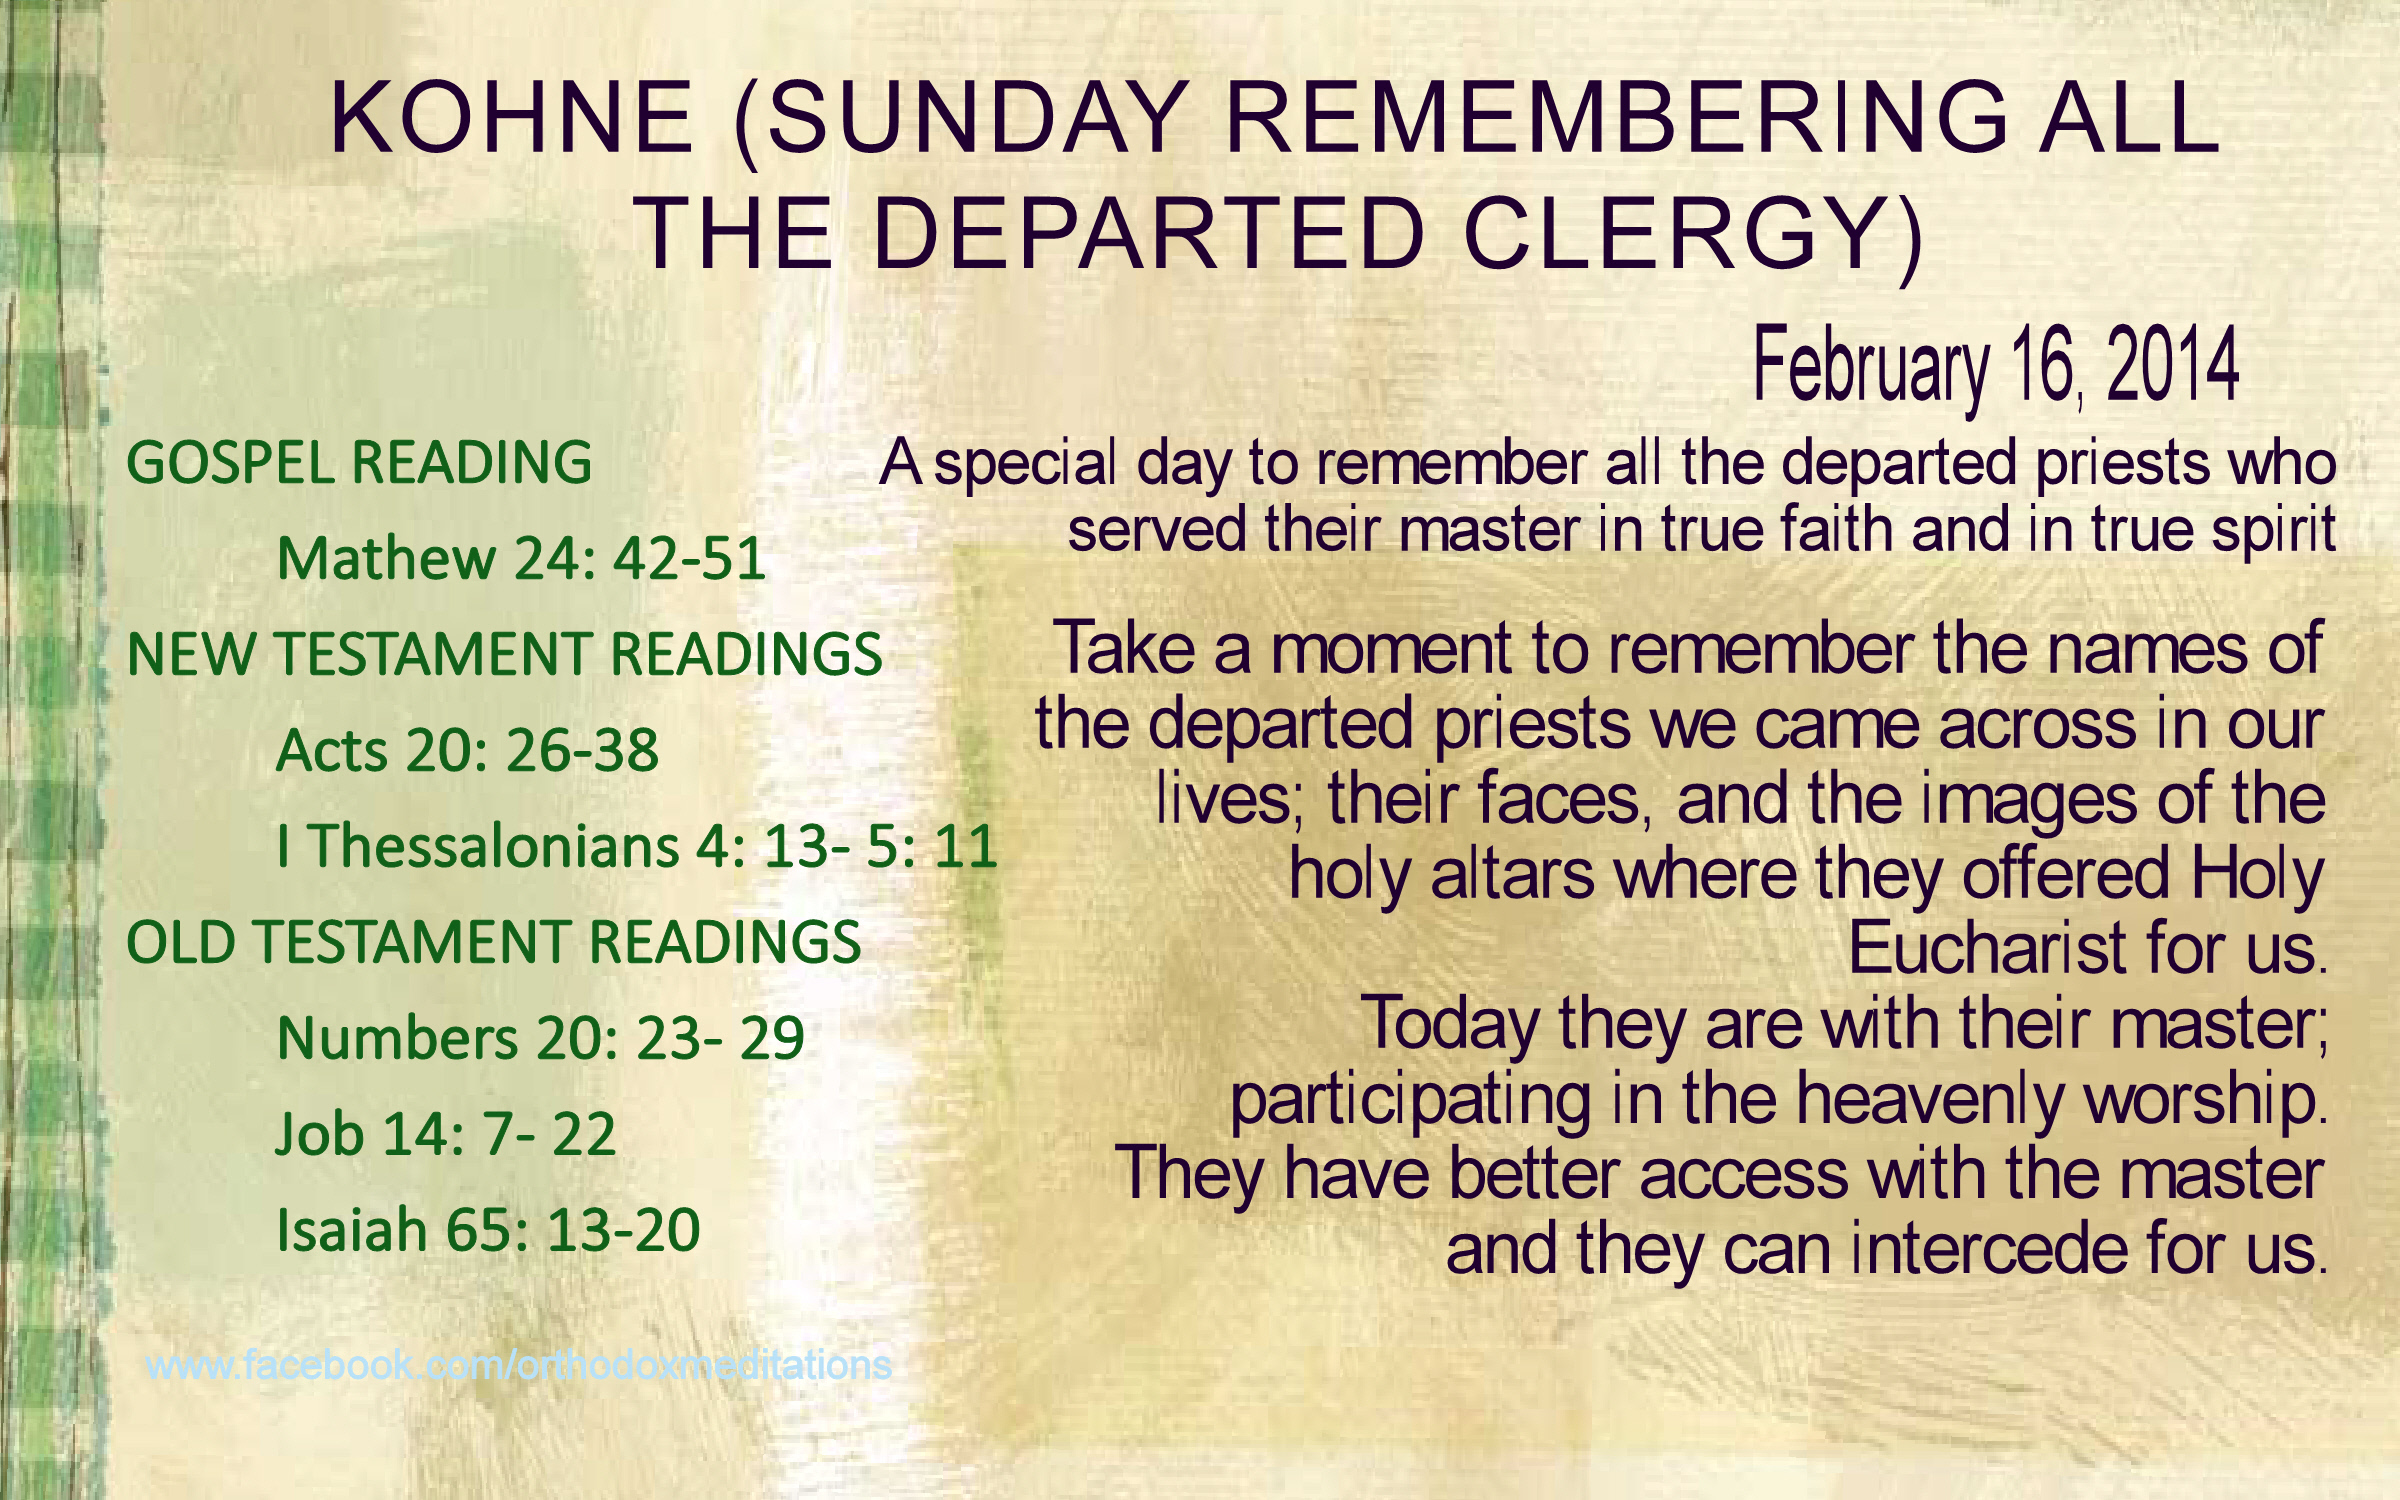 KOHNE (SUNDAY REMEMBERING ALL THE DEPARTED CLERGY)_001